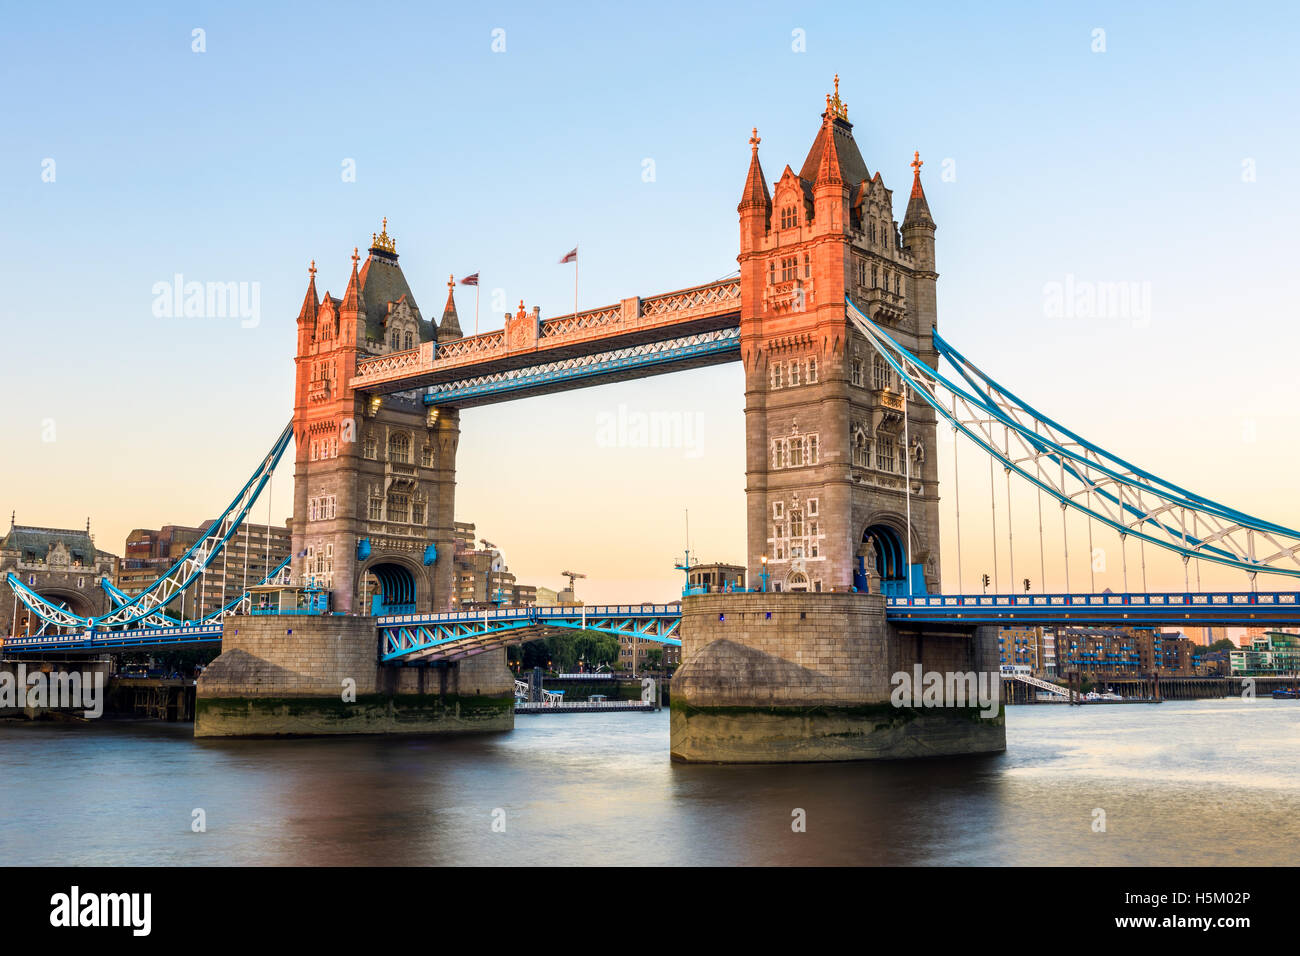 Tower Bridge in London at sunset, casting a orange light on part of the bridge - Stock Image